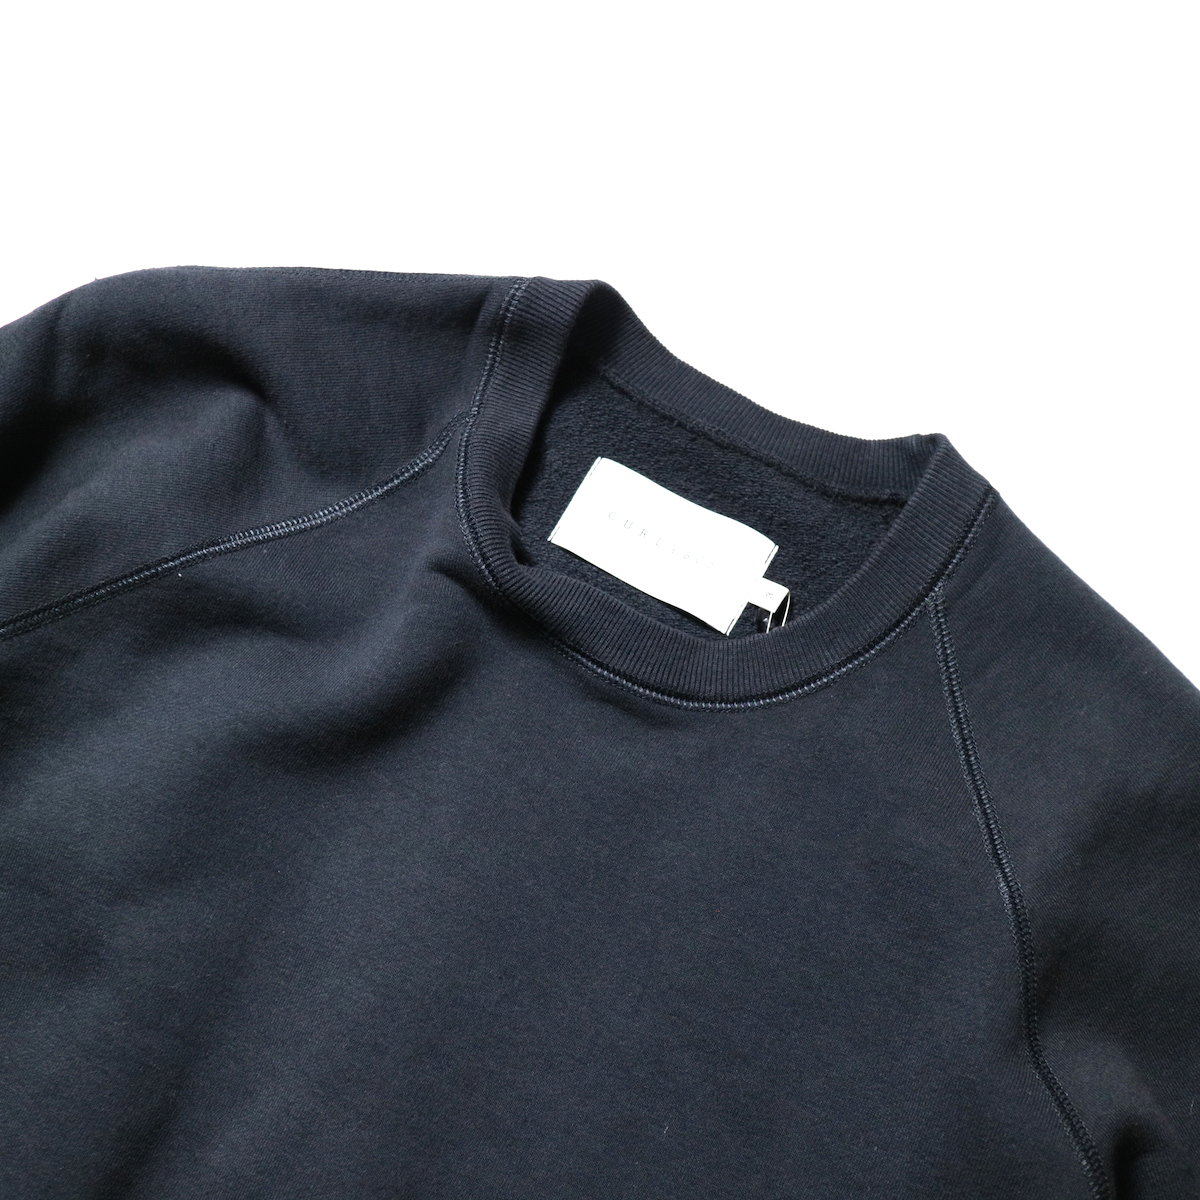 CURLY / FROSTED CREW SWEAT (D.Navy)首周り